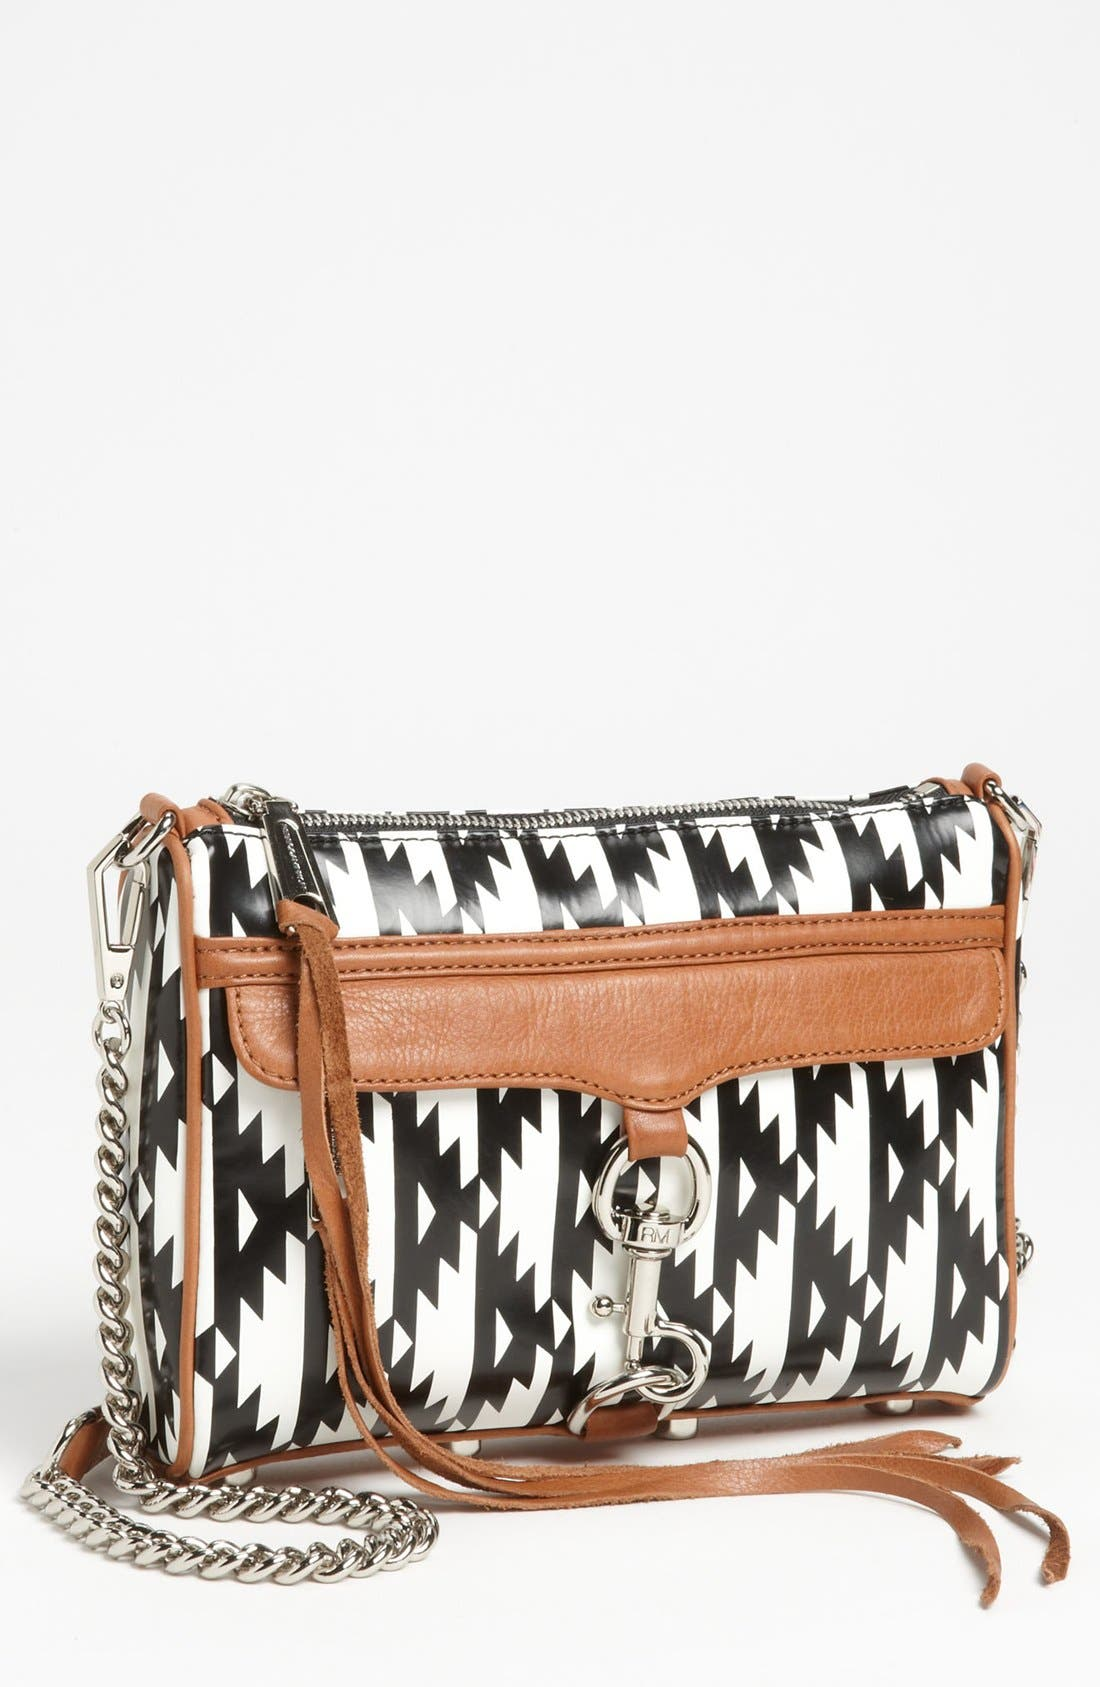 Alternate Image 1 Selected - Rebecca Minkoff 'Mini MAC' Ikat Leather Convertible Crossbody Bag